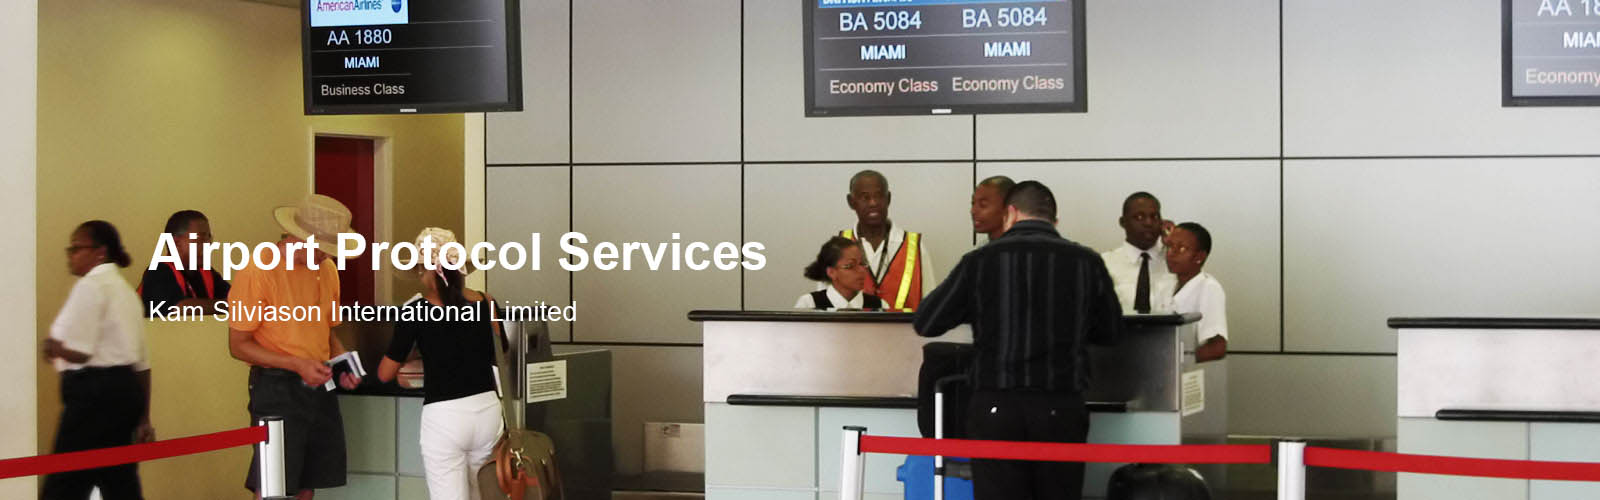 airport-protocol-services